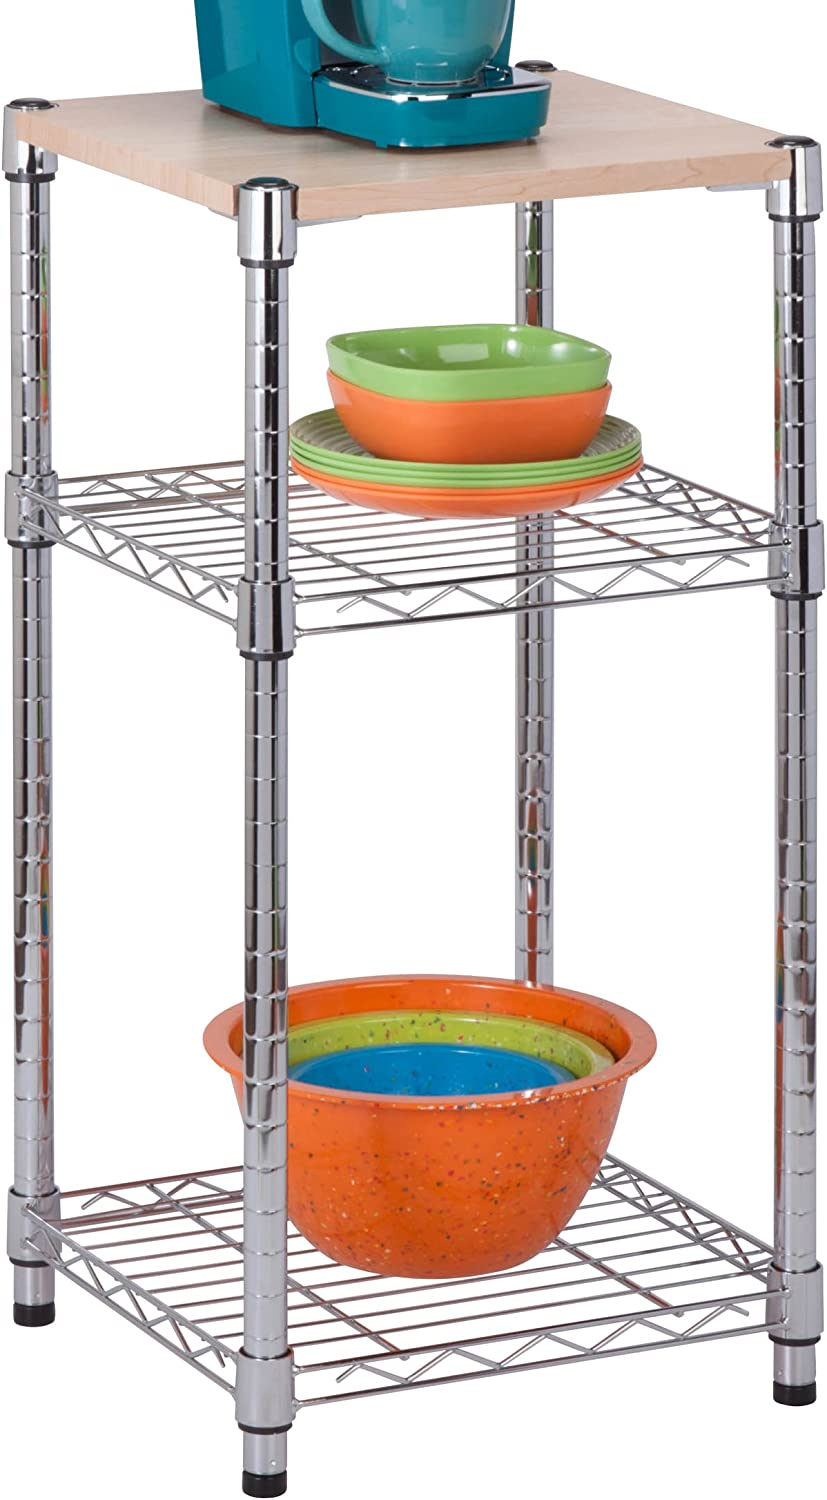 Honey-Can-Do SHF-04345 3 Tier Steel Shelving Unit with Wood Top, Chrome, 14 x 15 x 30